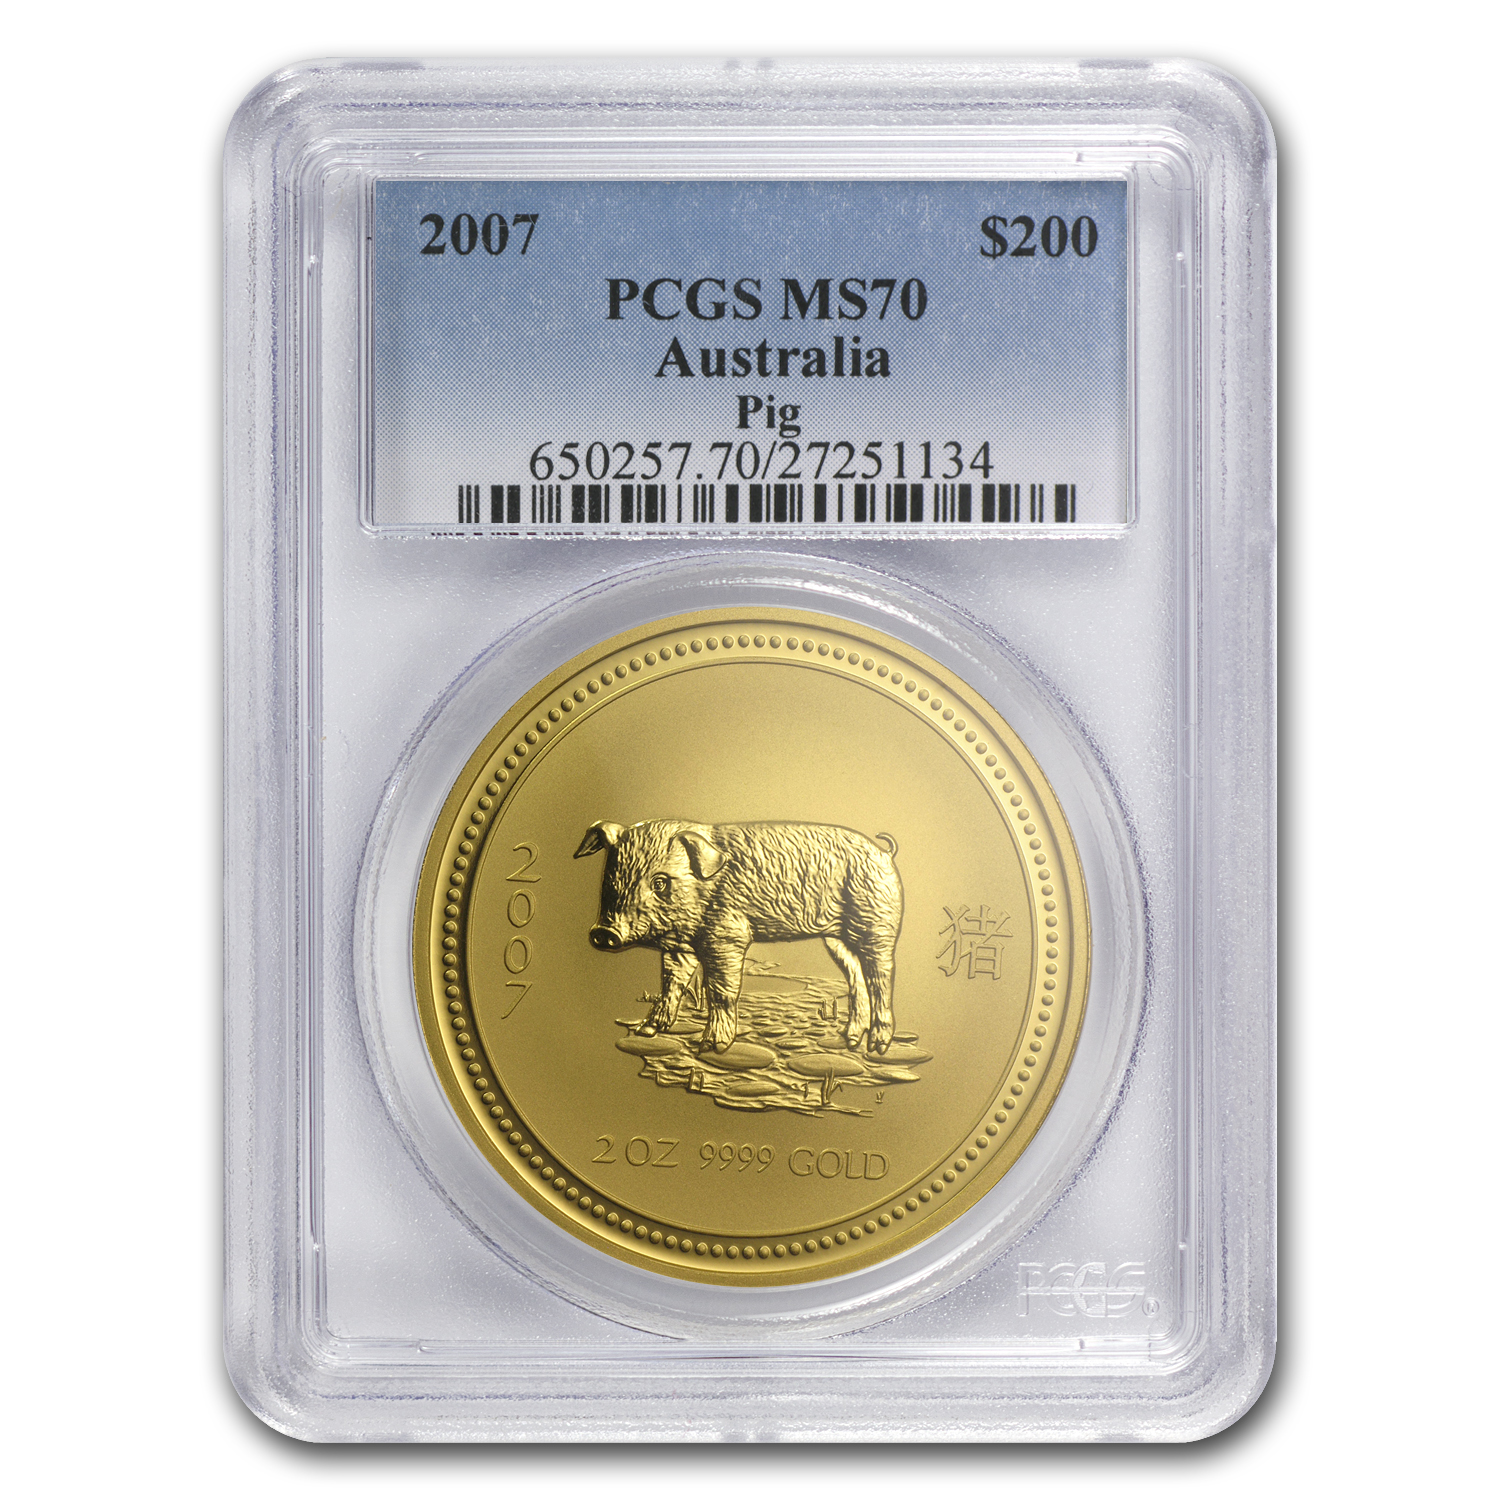 2007 2 oz Gold Lunar Year of the Pig MS-70 PCGS (Series I)